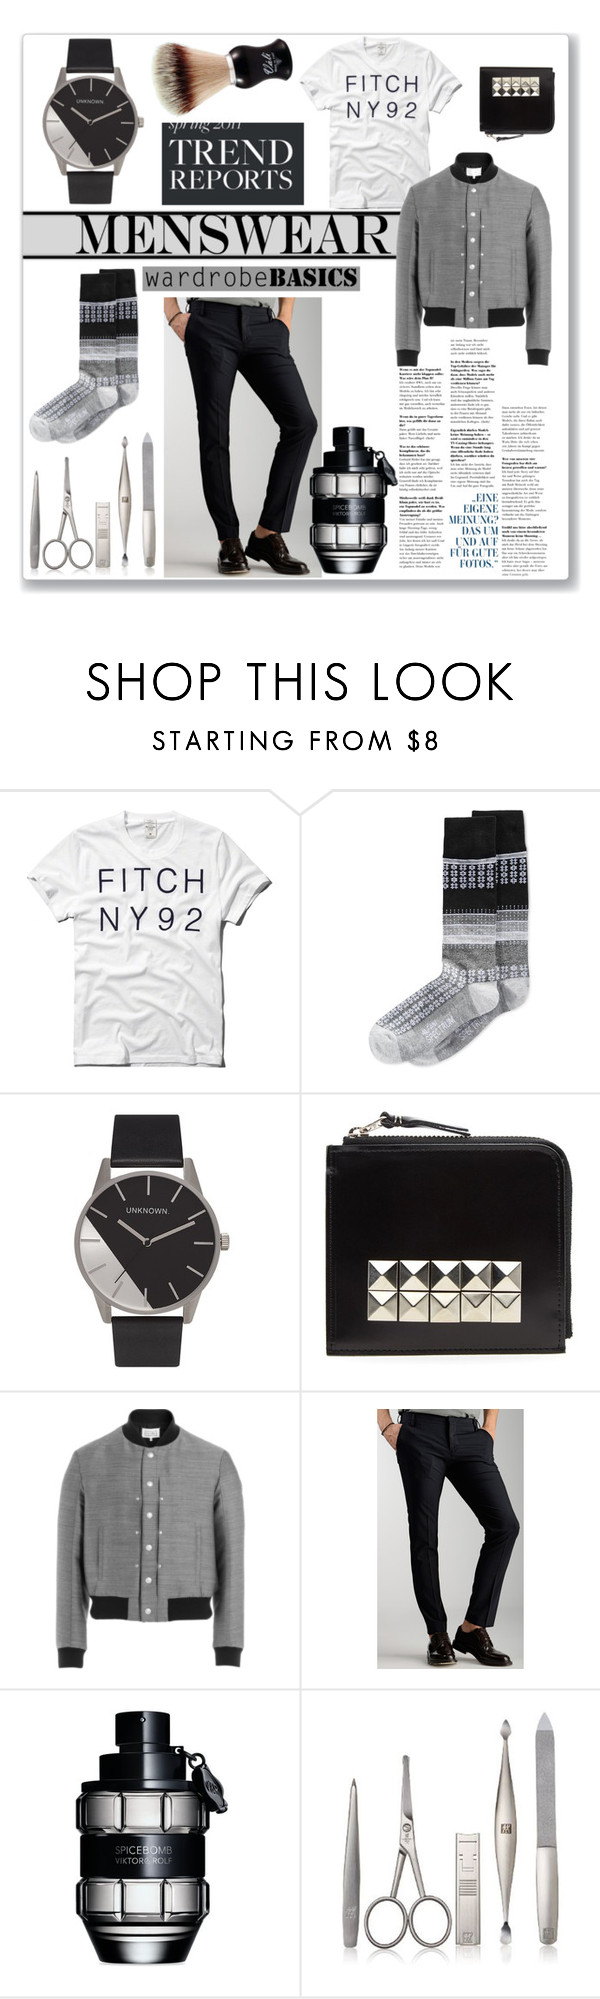 """Wardrobe Basics: Menswear"" by invisable-dreamer ❤ liked on Polyvore featuring Abercrombie & Fitch, Alfani, Comme des Garçons, Maison Margiela, Entre Amis, Viktor & Rolf, Zwilling Pour Homme, Váli, mens and men"